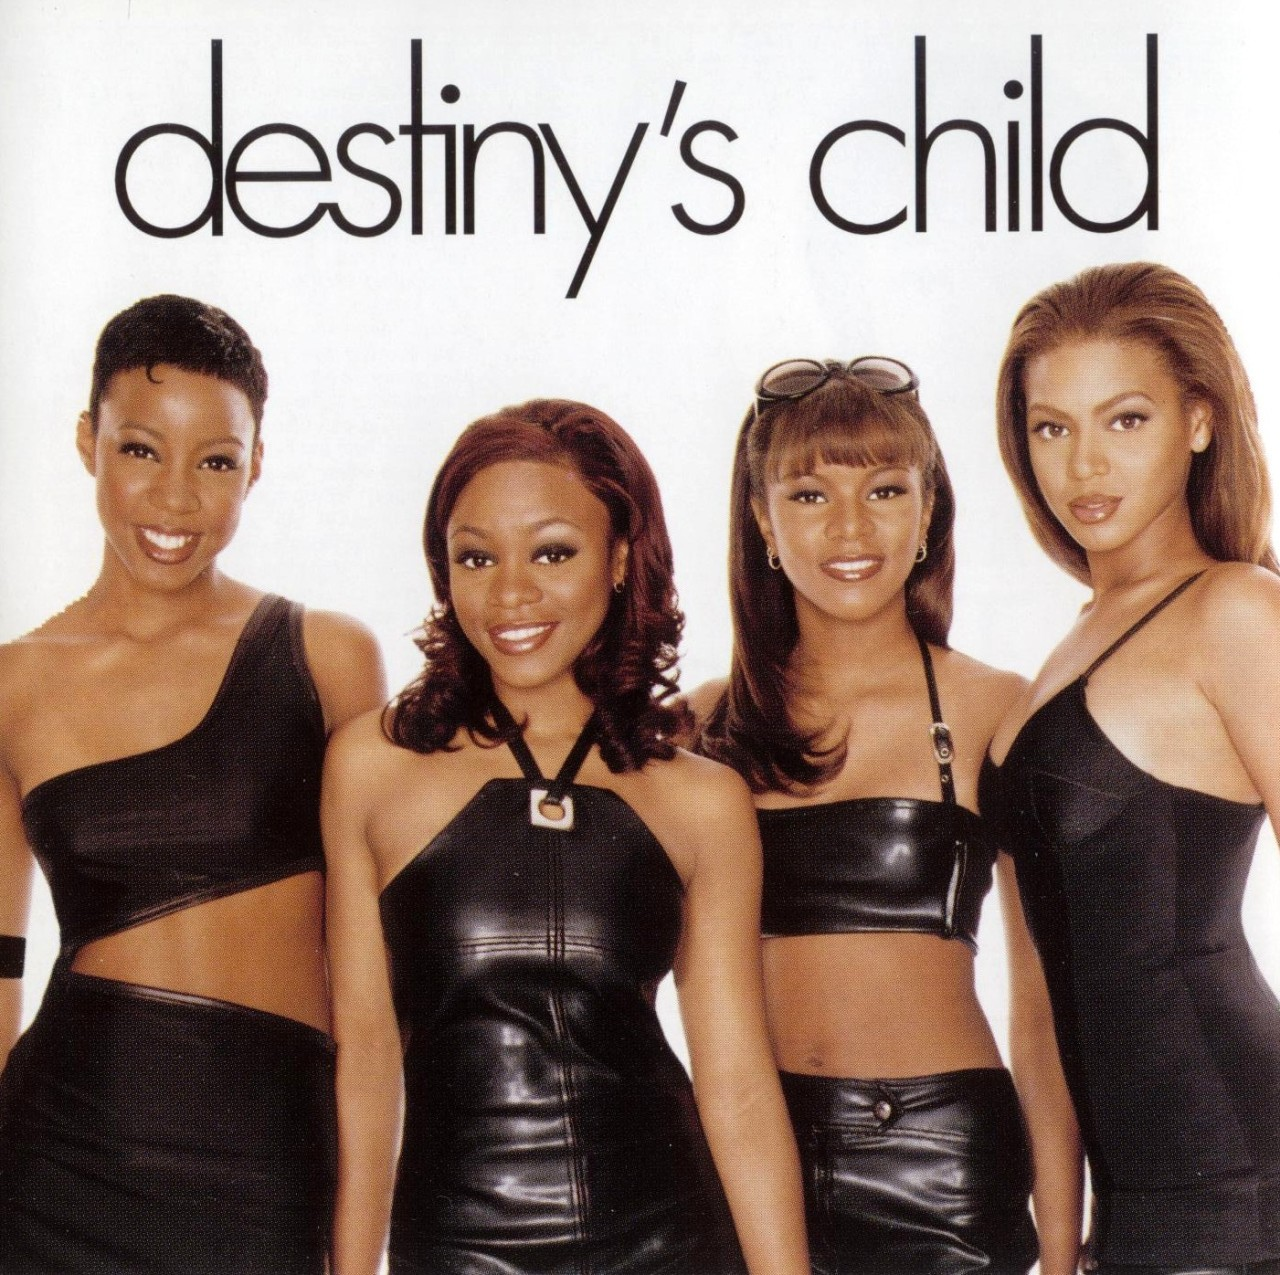 15 YEARS AGO TODAY |2/17/98| Destiny's Child released their self-titled debut album, on Columbia Records.